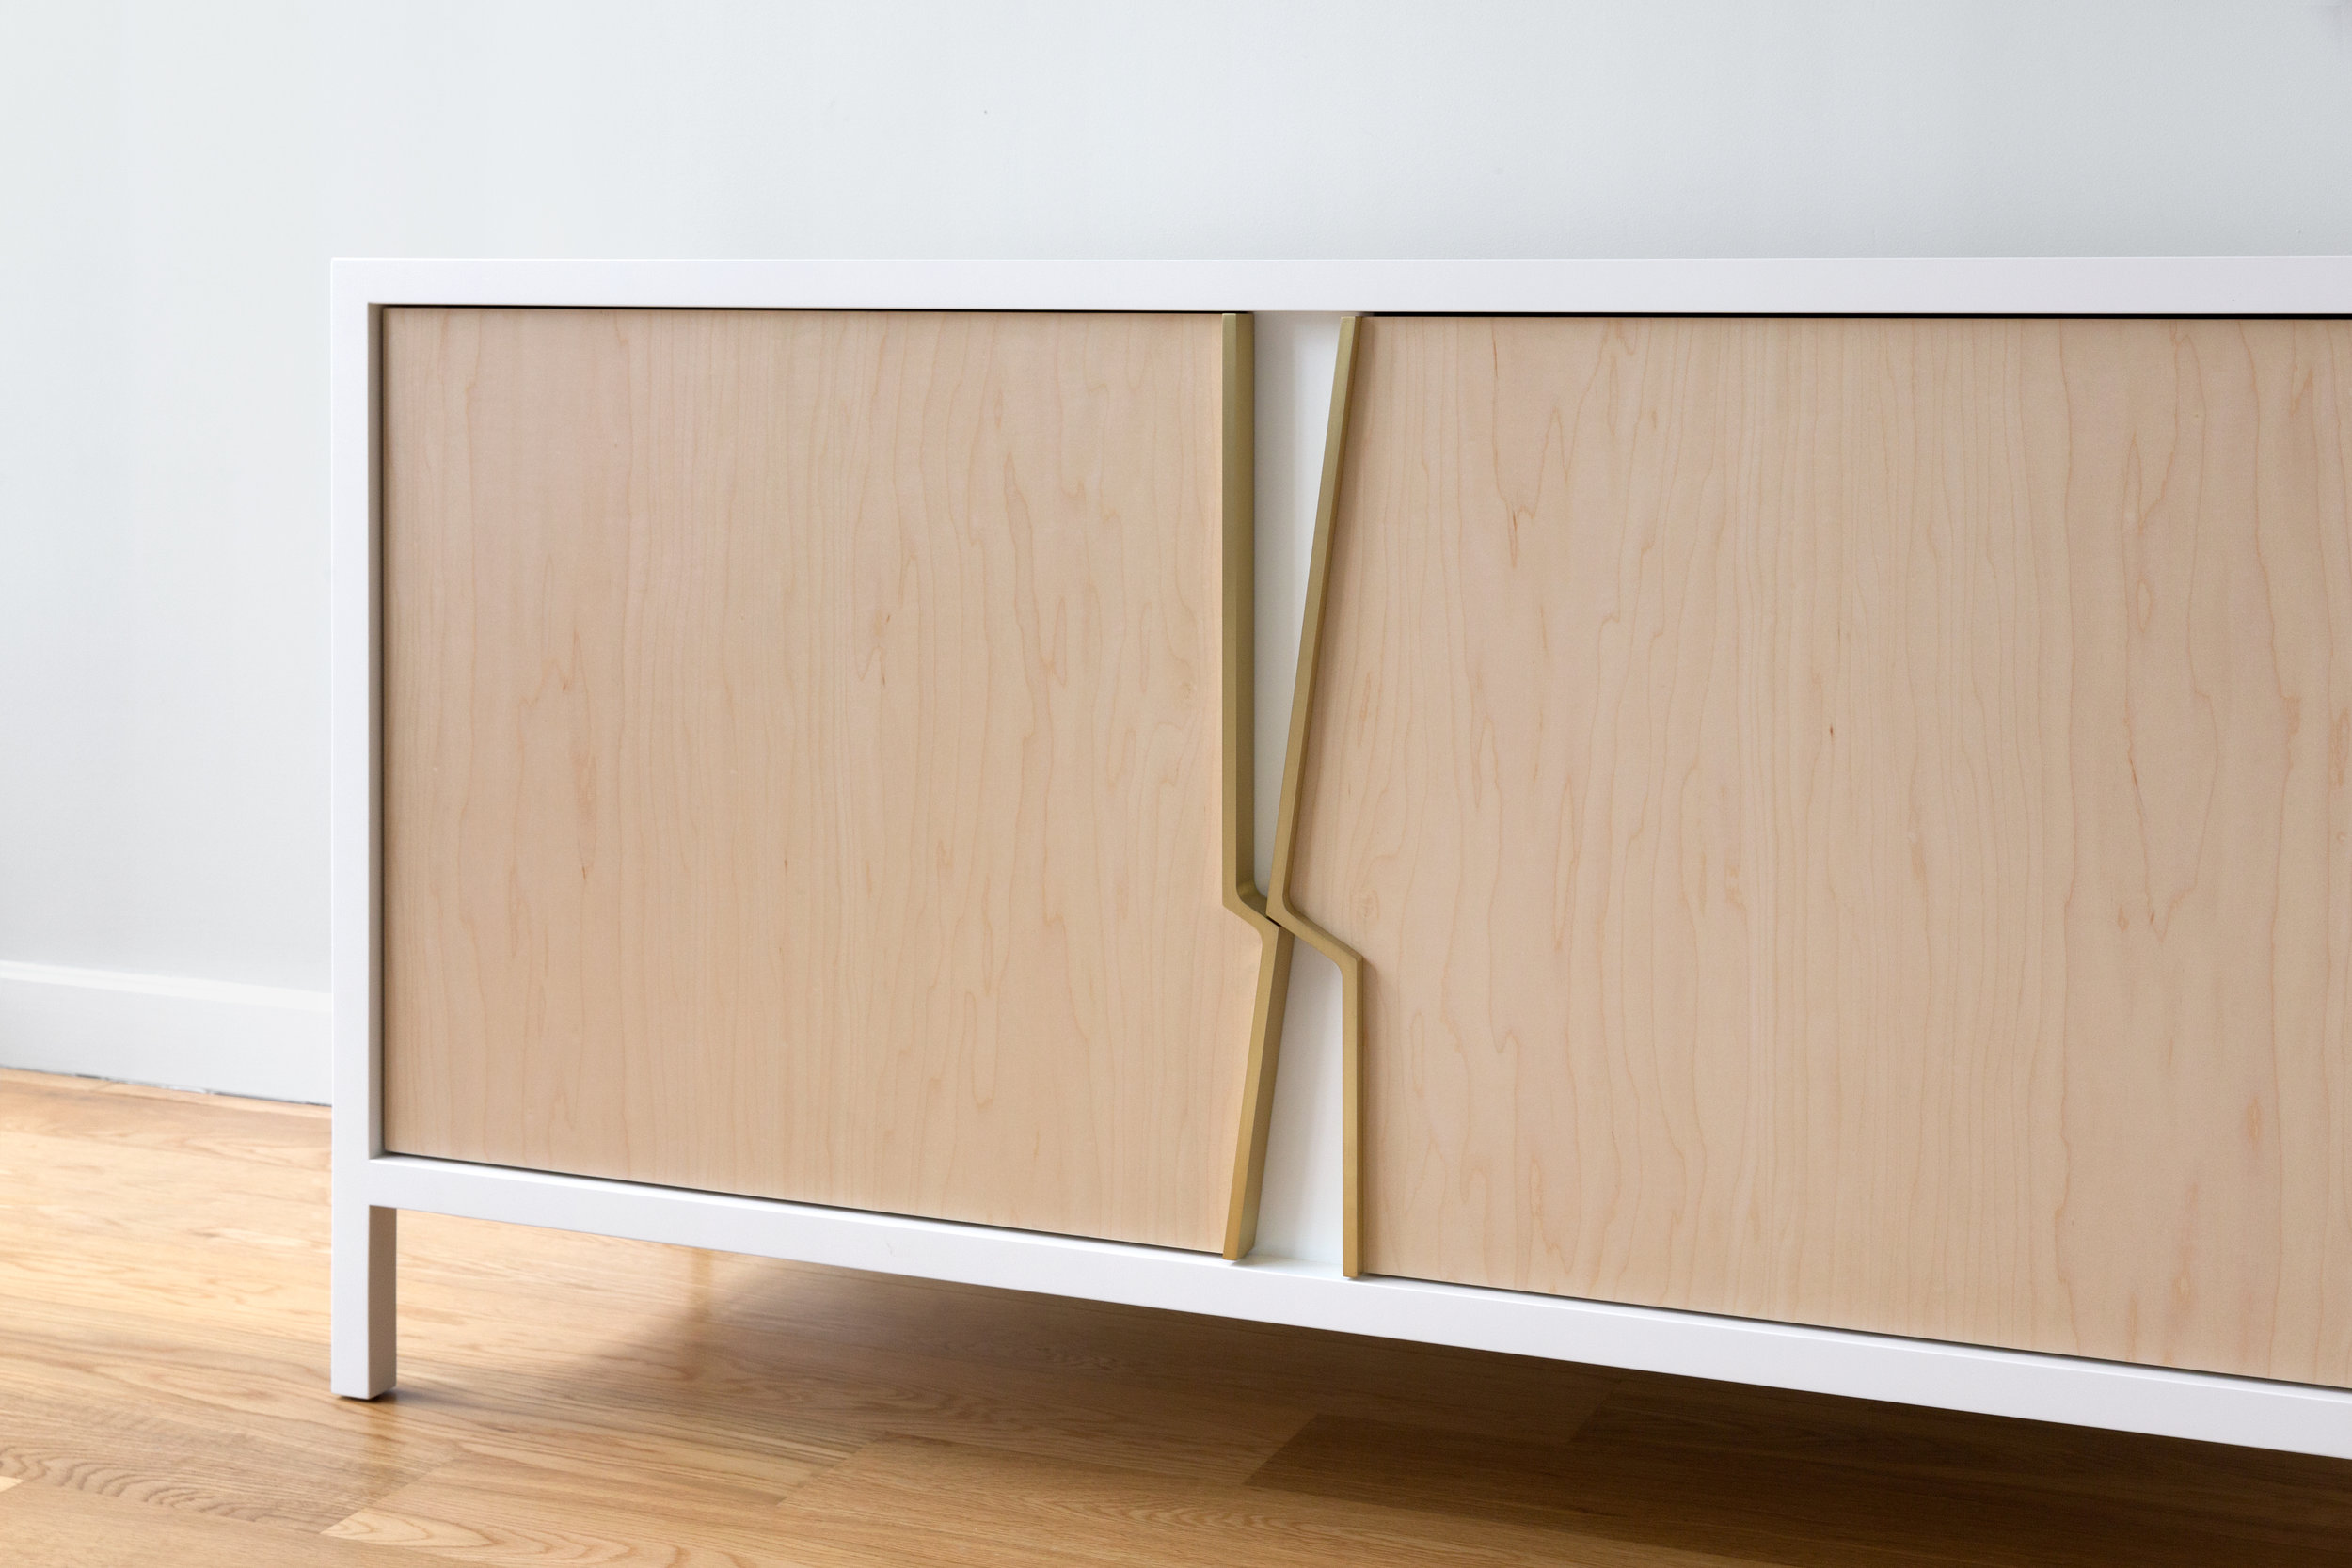 Halsey Fracture Cabinet in White Lacquer, Maple and Brass by Piet Houtenbos